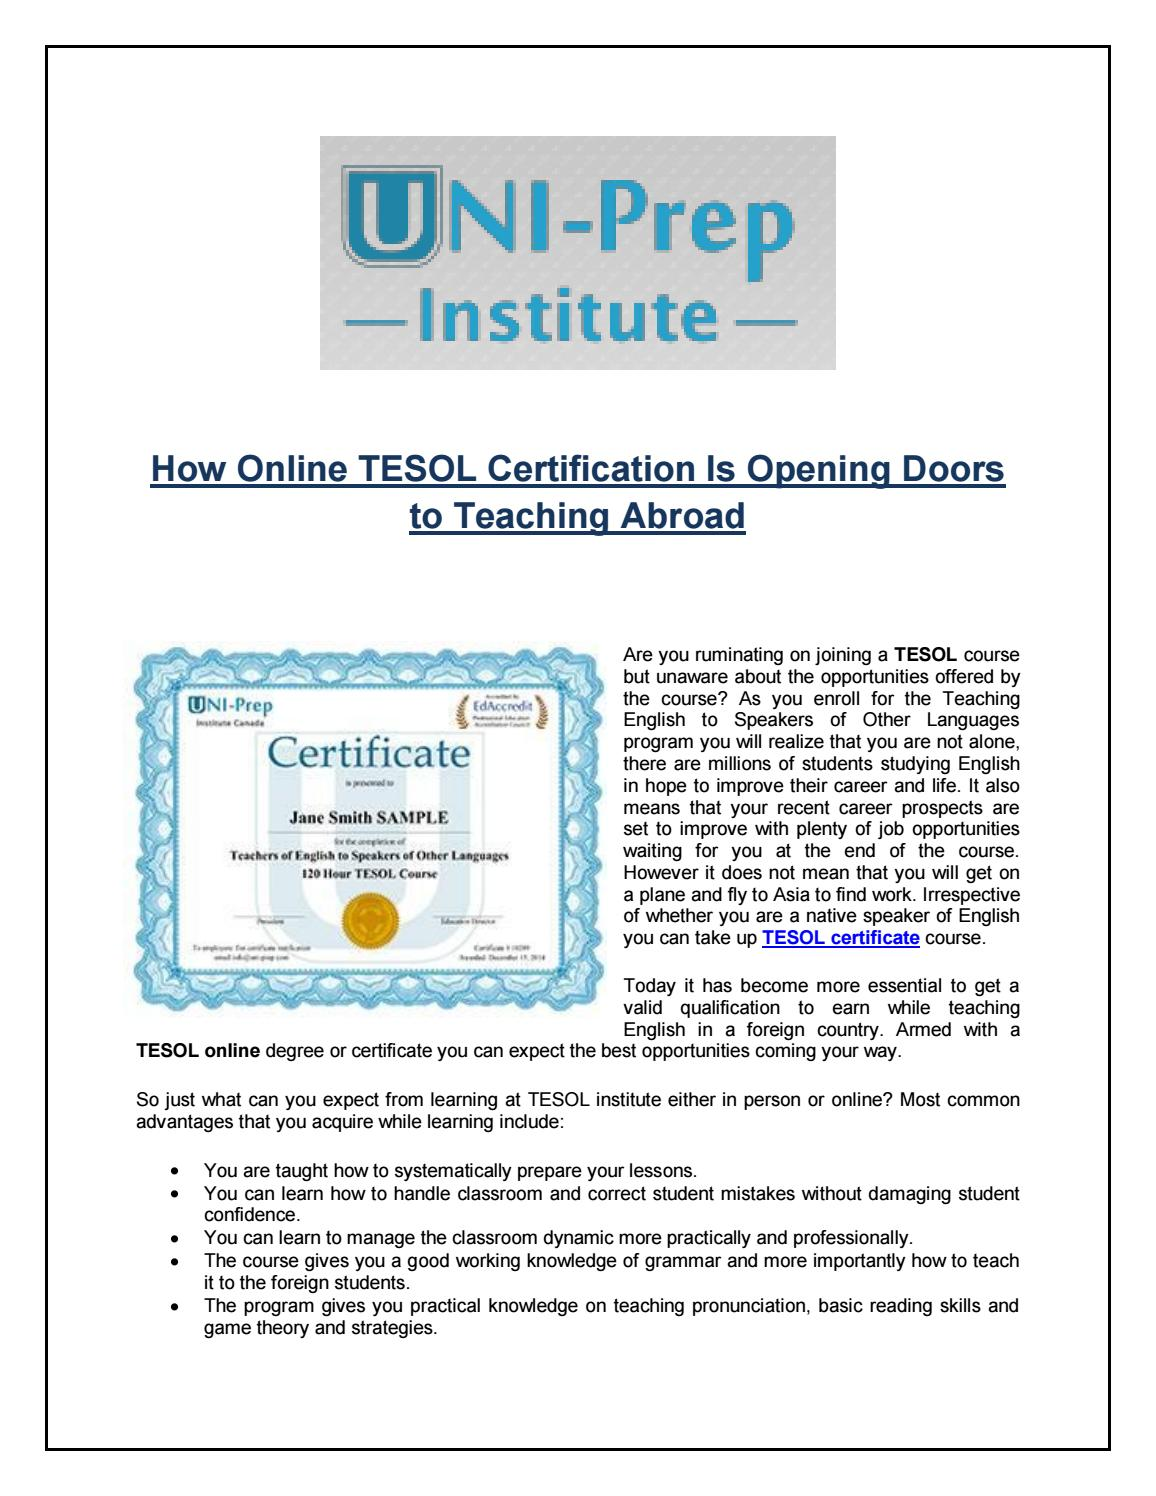 How Online Tesol Certification Is Opening Doors To Teaching Abroad